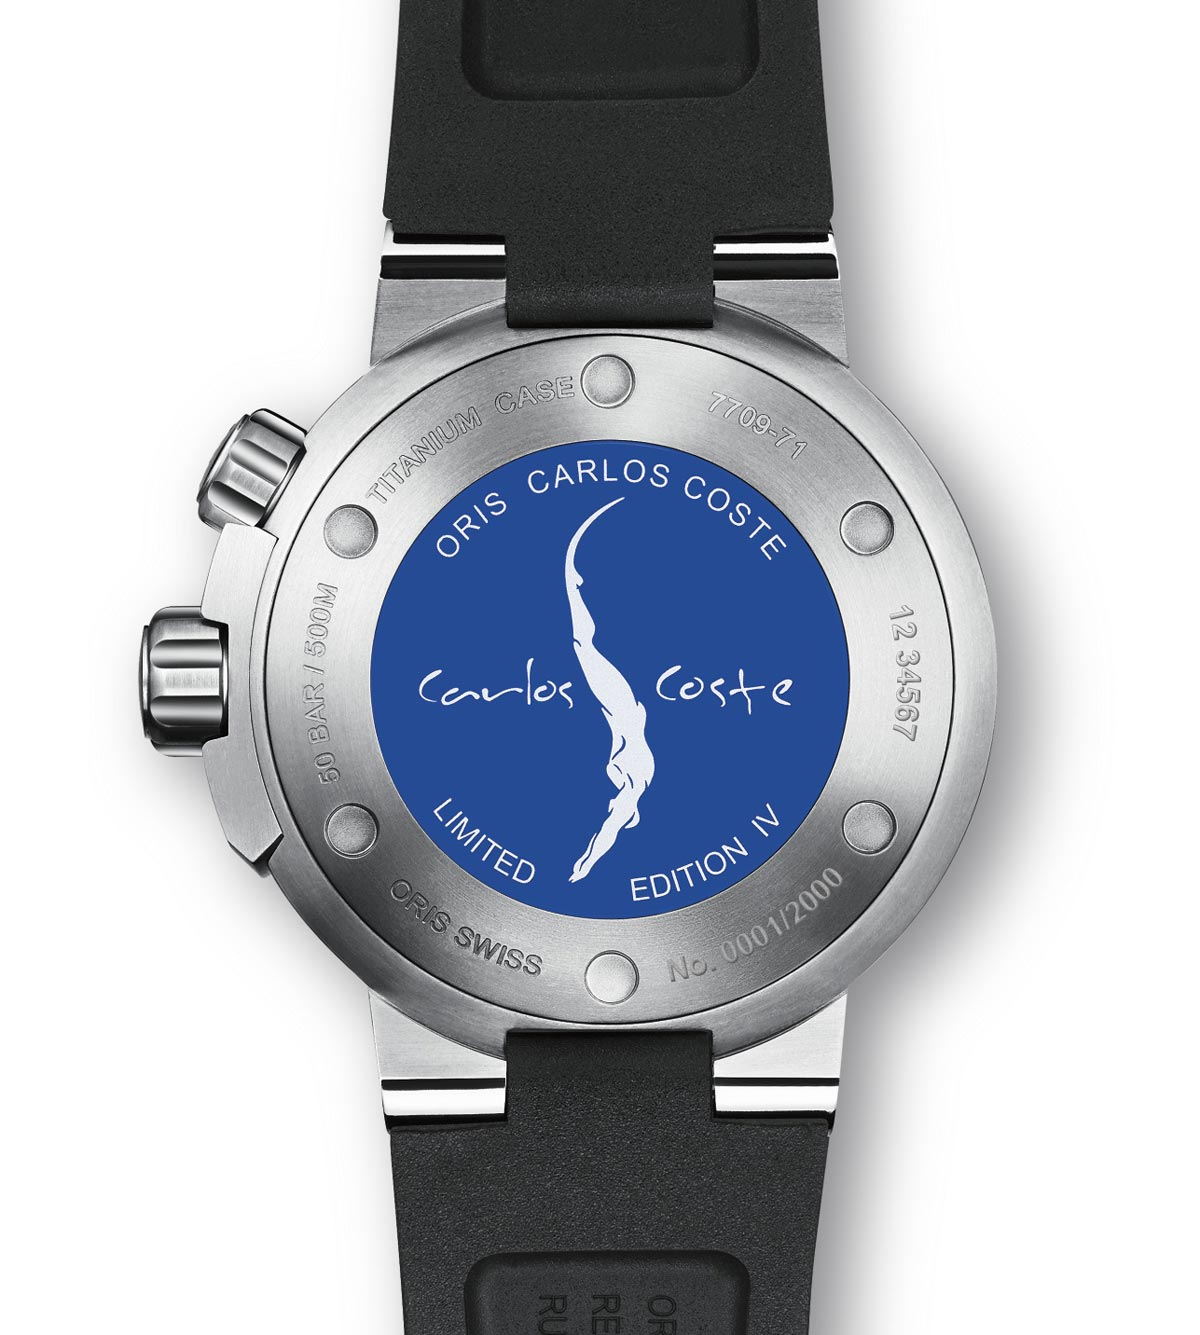 Oris Carlos Coste Limited Edition Iv Time And Watches